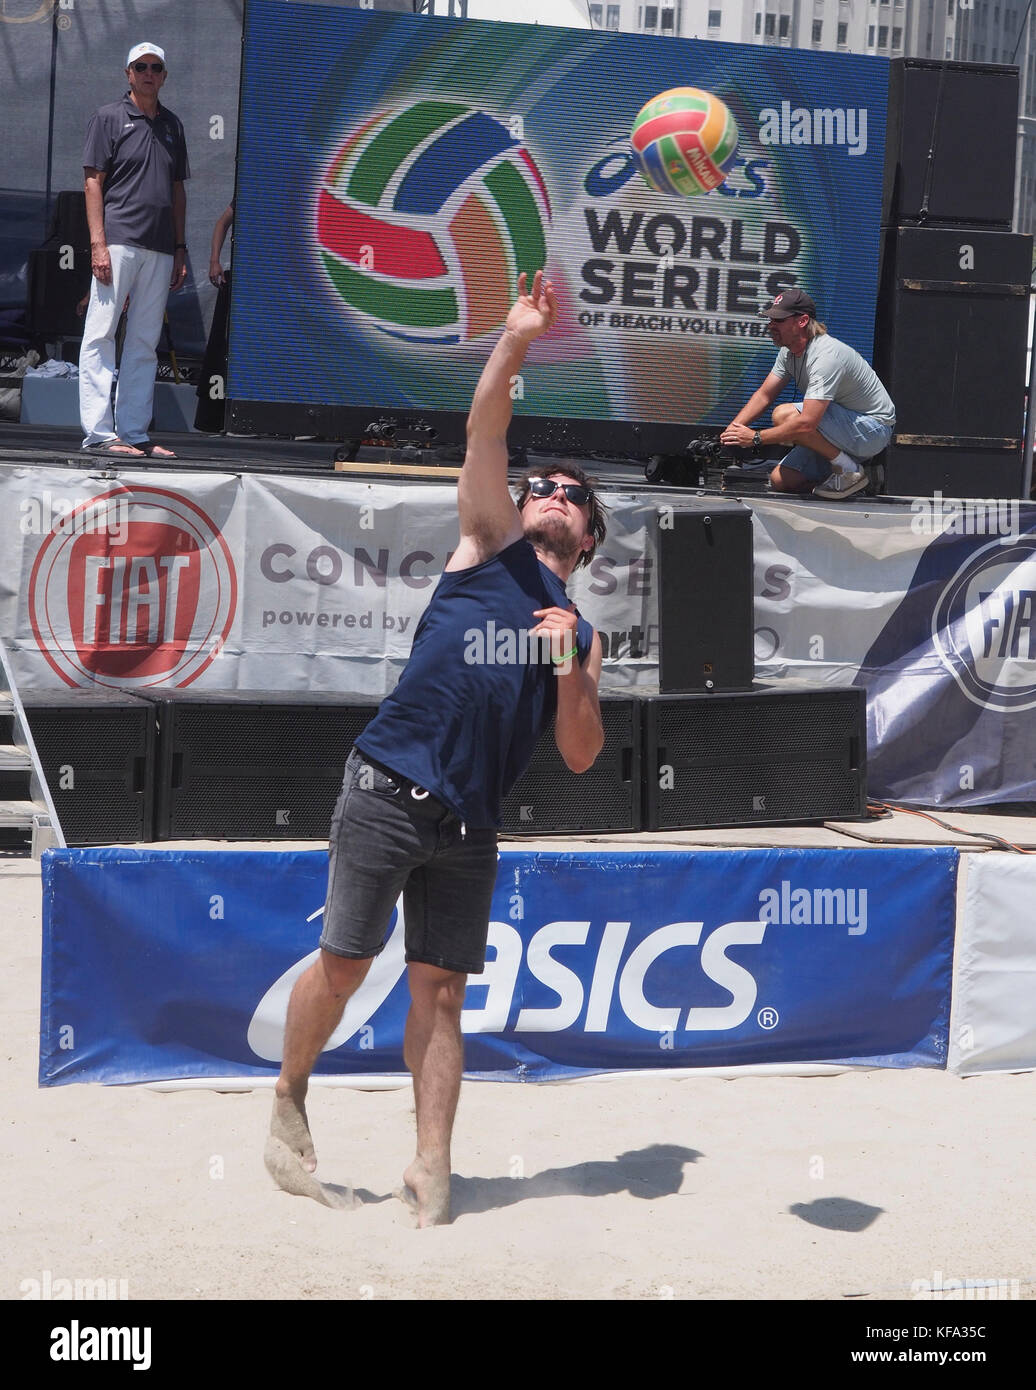 asics 2015 volleyball